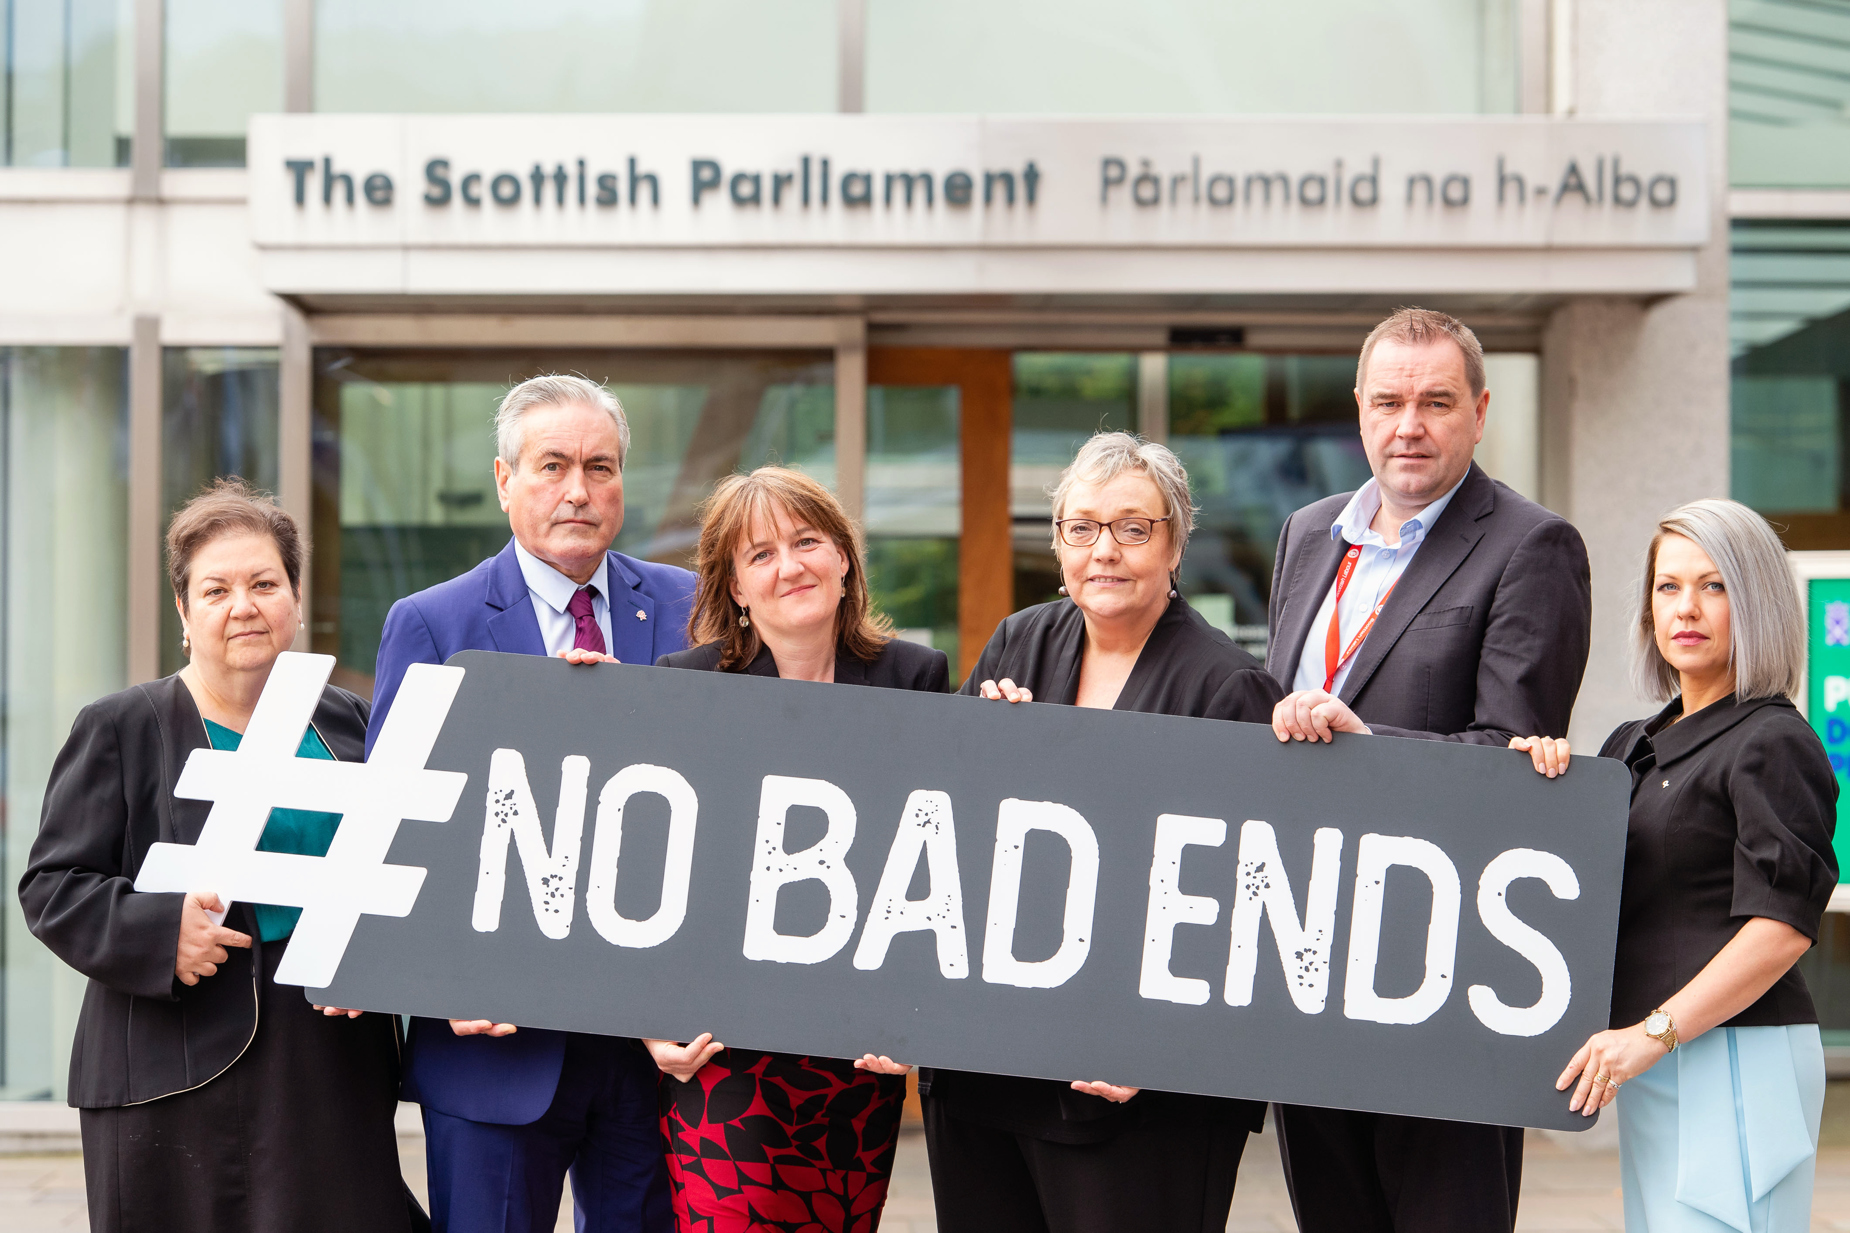 MSPs outside scottish parliament back Aberlour's new campaign